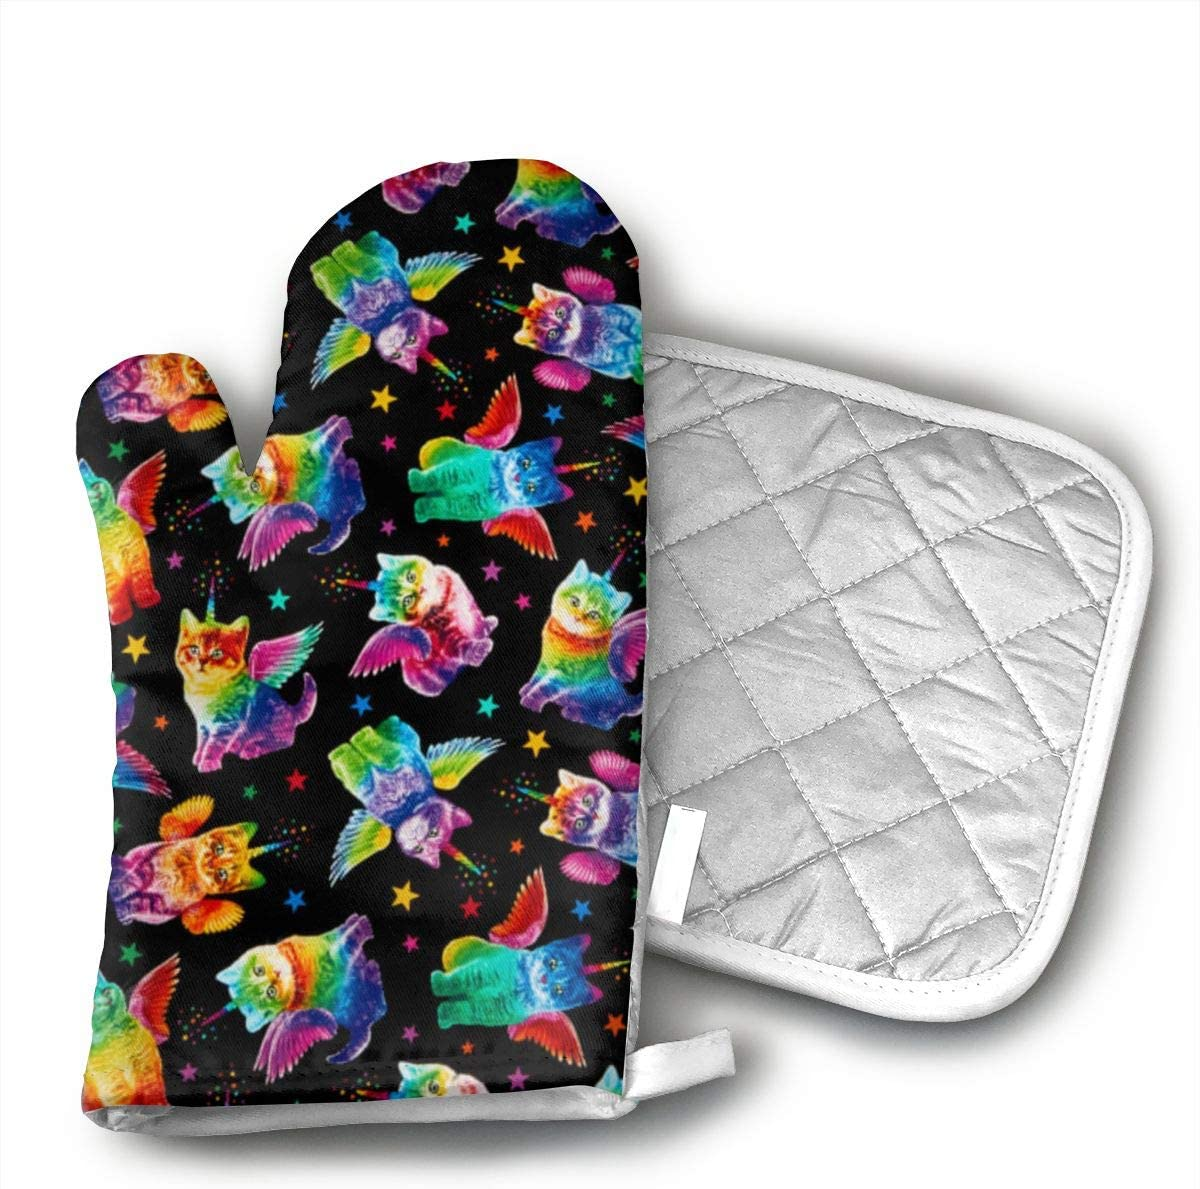 Rainbow Unicorn Cats Black Oven Mitts and Potholders (2-Piece Sets) - Kitchen Set with Cotton Heat Resistant,Oven Gloves for BBQ Cooking Baking Grilling